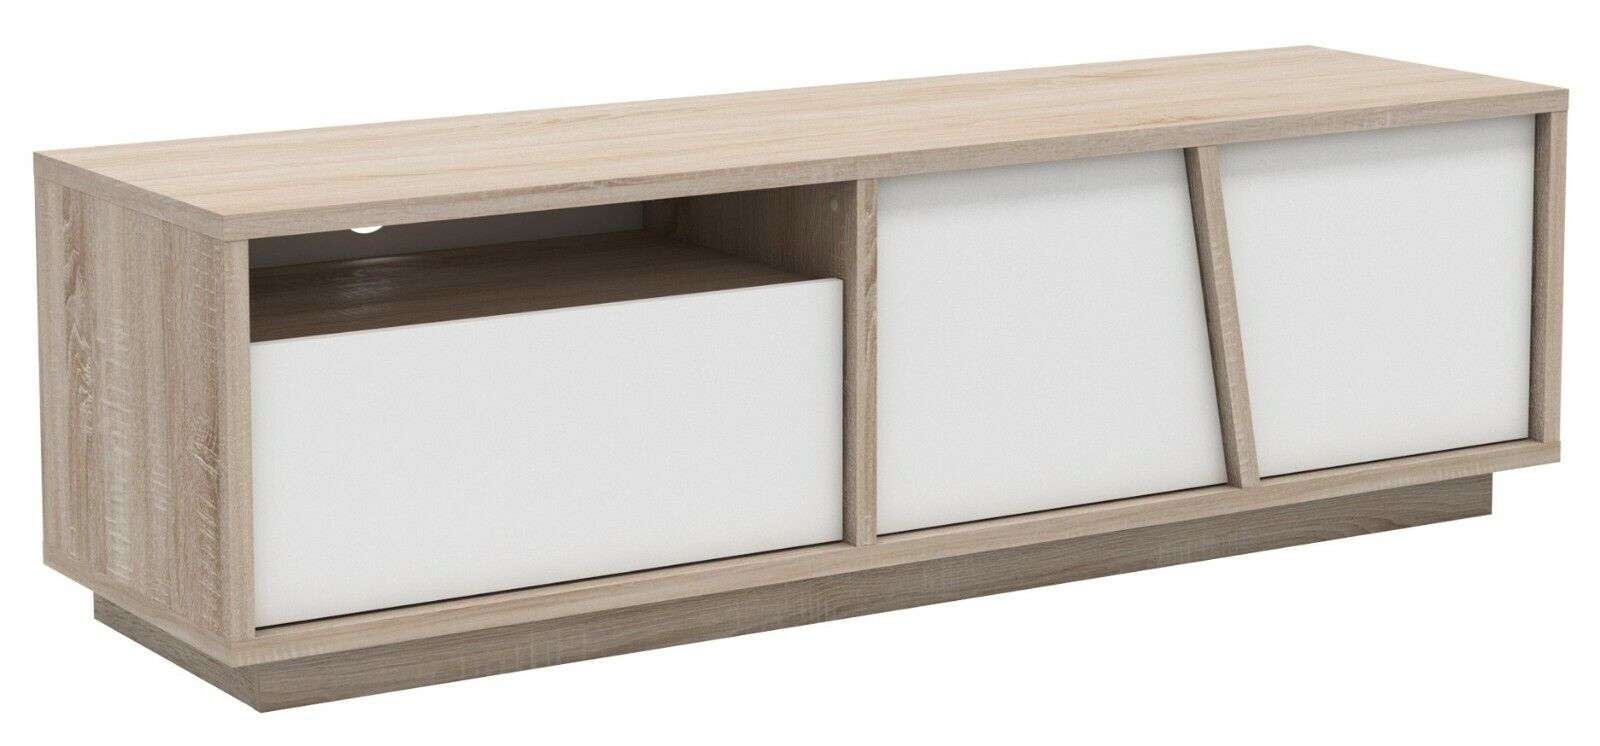 Details about Modern tv table furniture living dining room furniture  television oak and white 149x42- show original title